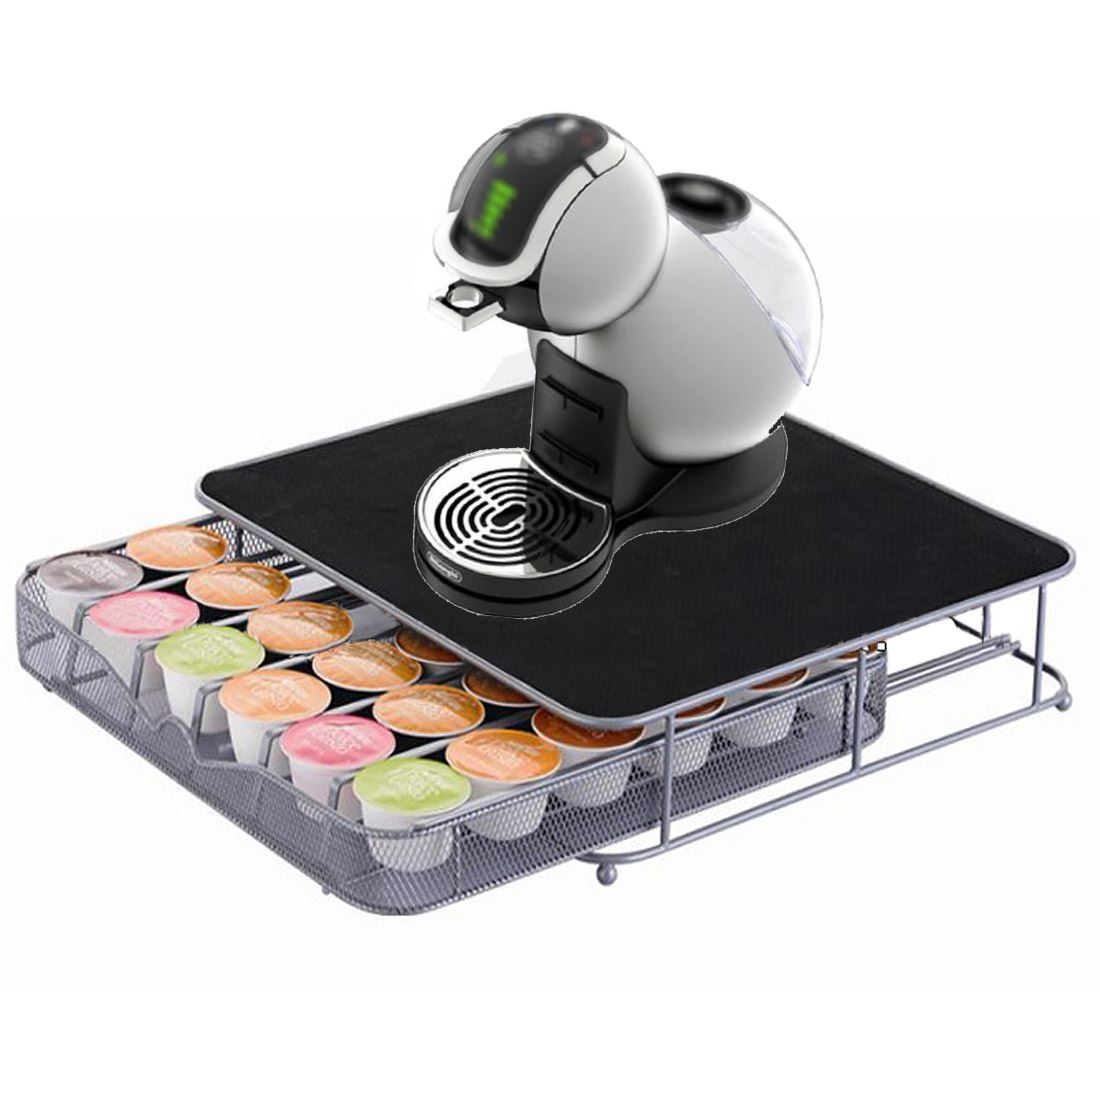 uk new dolce gusto only 6 row coffee machine stand small pods capsule storage ebay. Black Bedroom Furniture Sets. Home Design Ideas